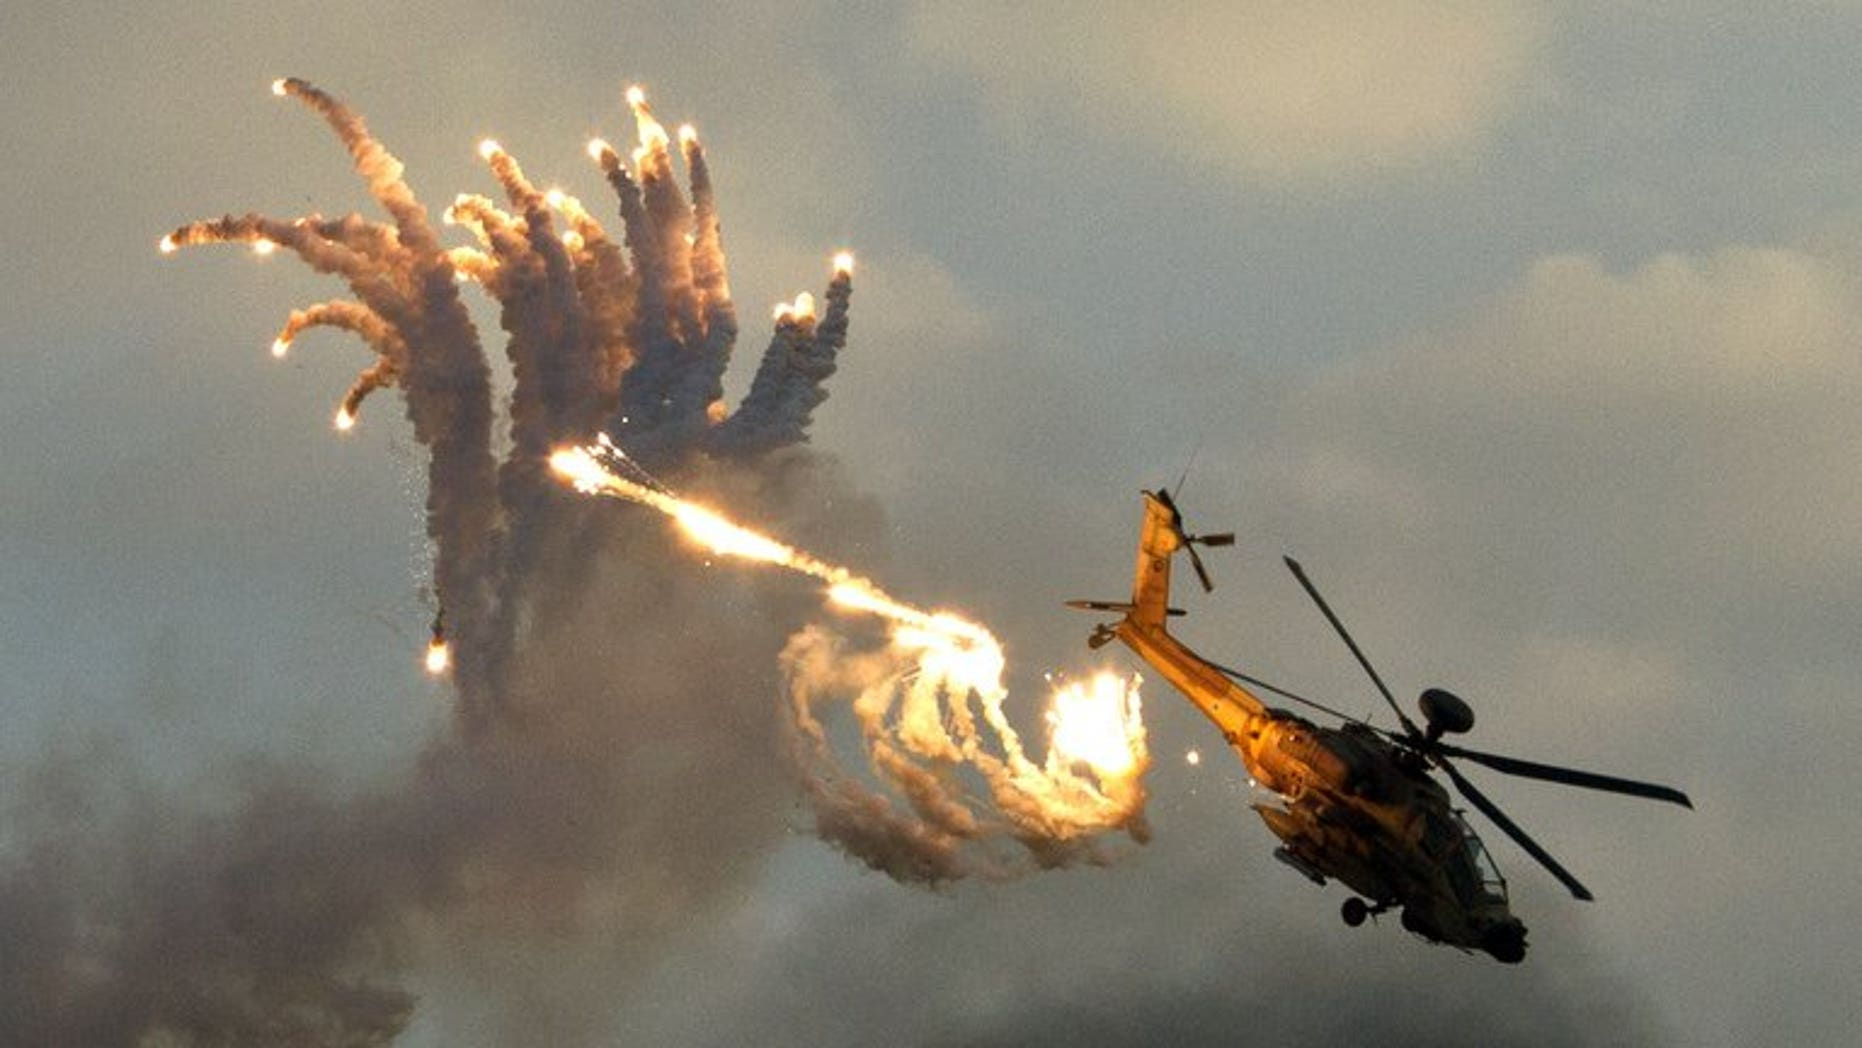 An Israeli Apache helicopter launches anti-missile flares during an air show on December 27, 2012. The Israeli air force attacked targets in the Gaza Strip overnight, following rocket fire from the Palestinian territory into southern Israel, sources from both sides of the conflict said.